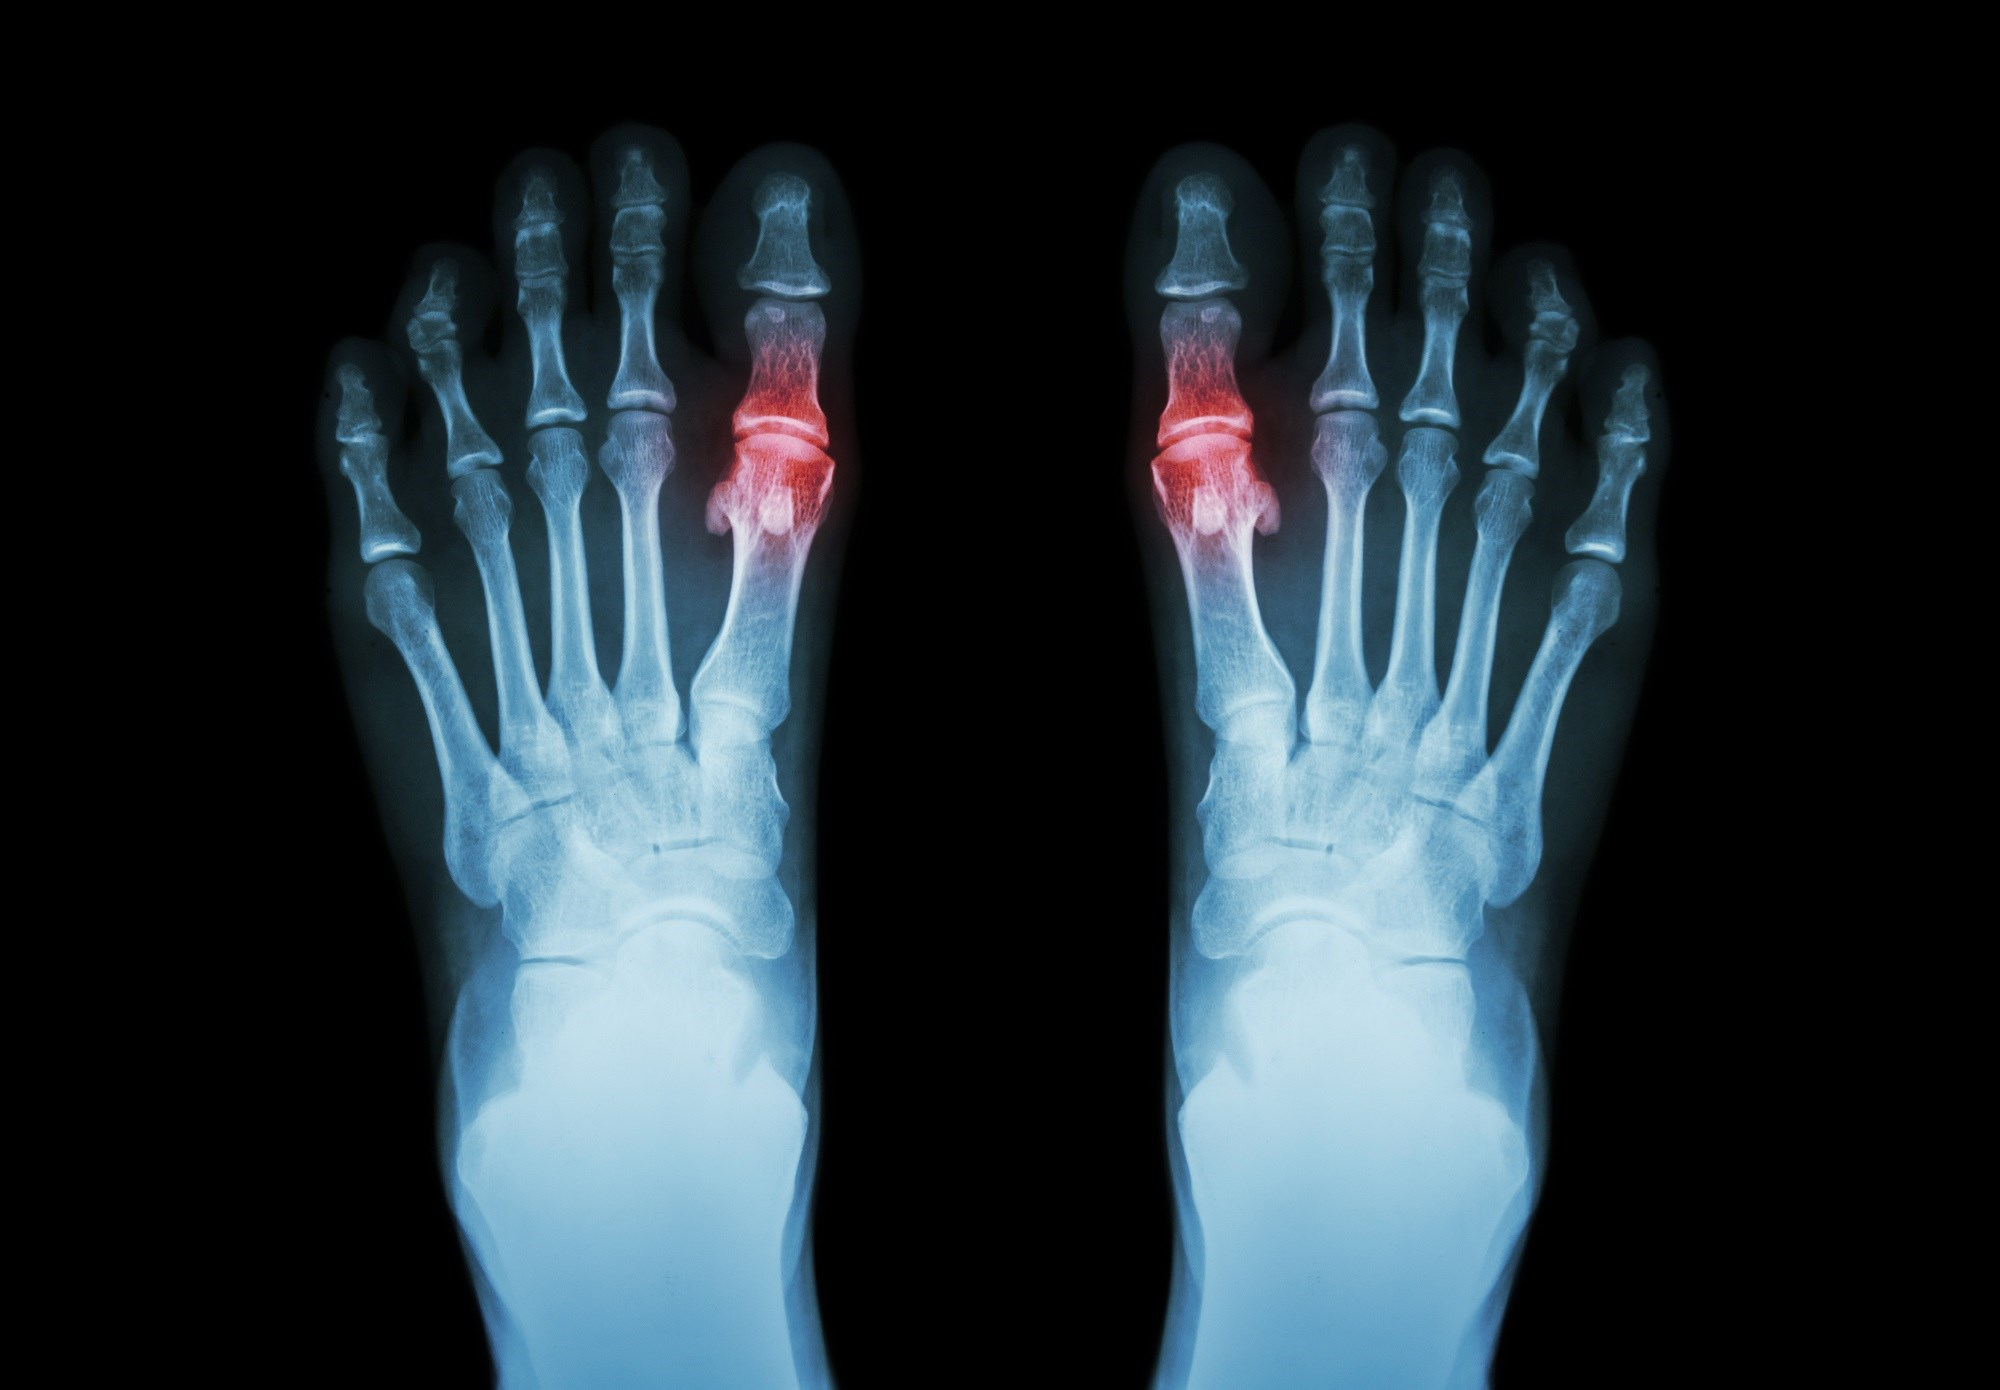 Patients With Early-Onset Gout Develop Earlier Metabolic Comorbidities, Severe Joint Involvement